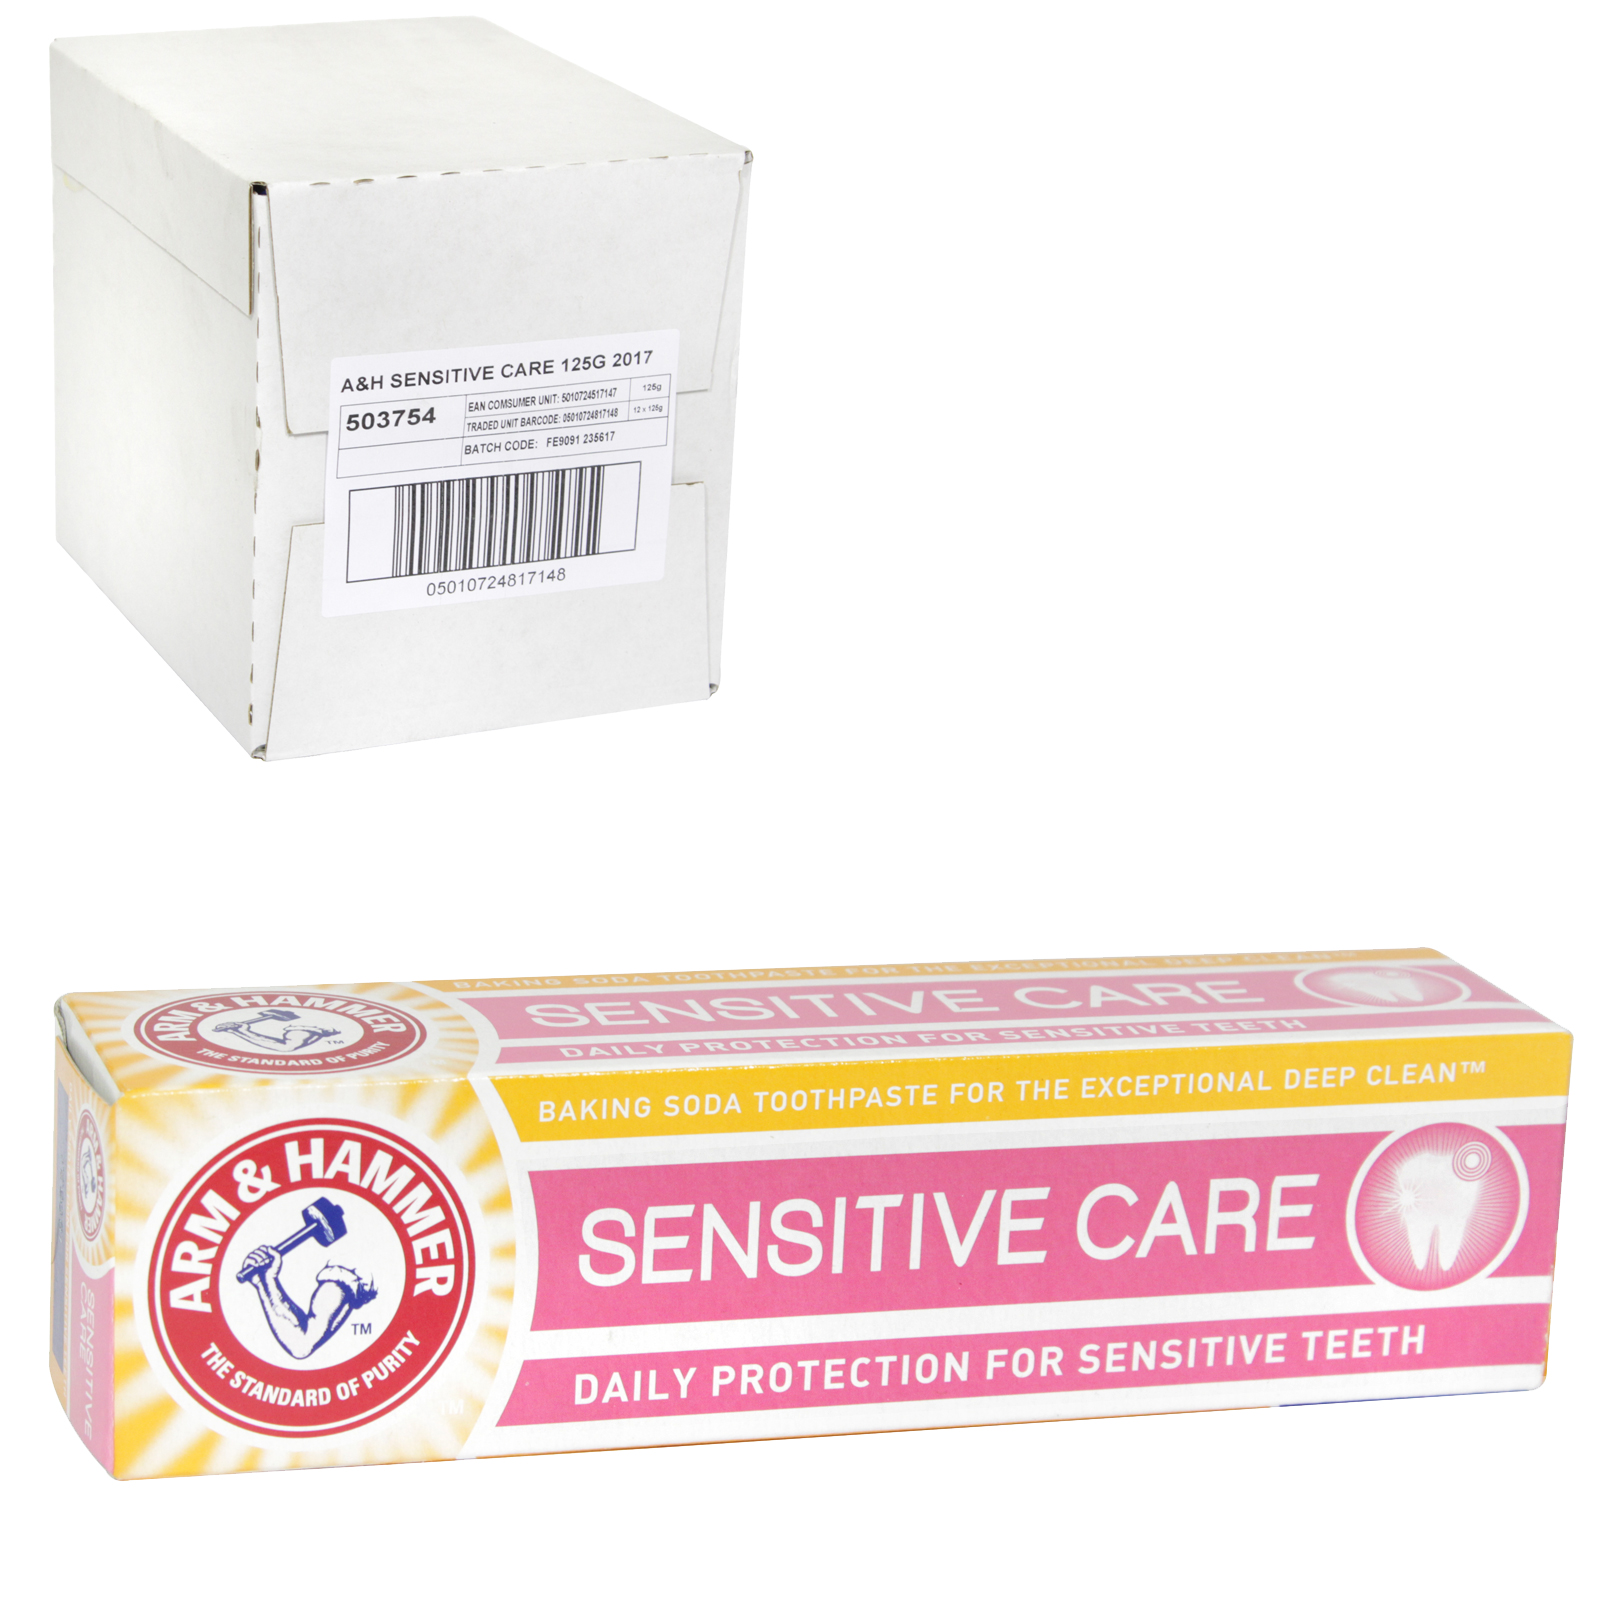 ARM & HAMMER TOOTHPASTE 125G SENSITIVE CARE X12